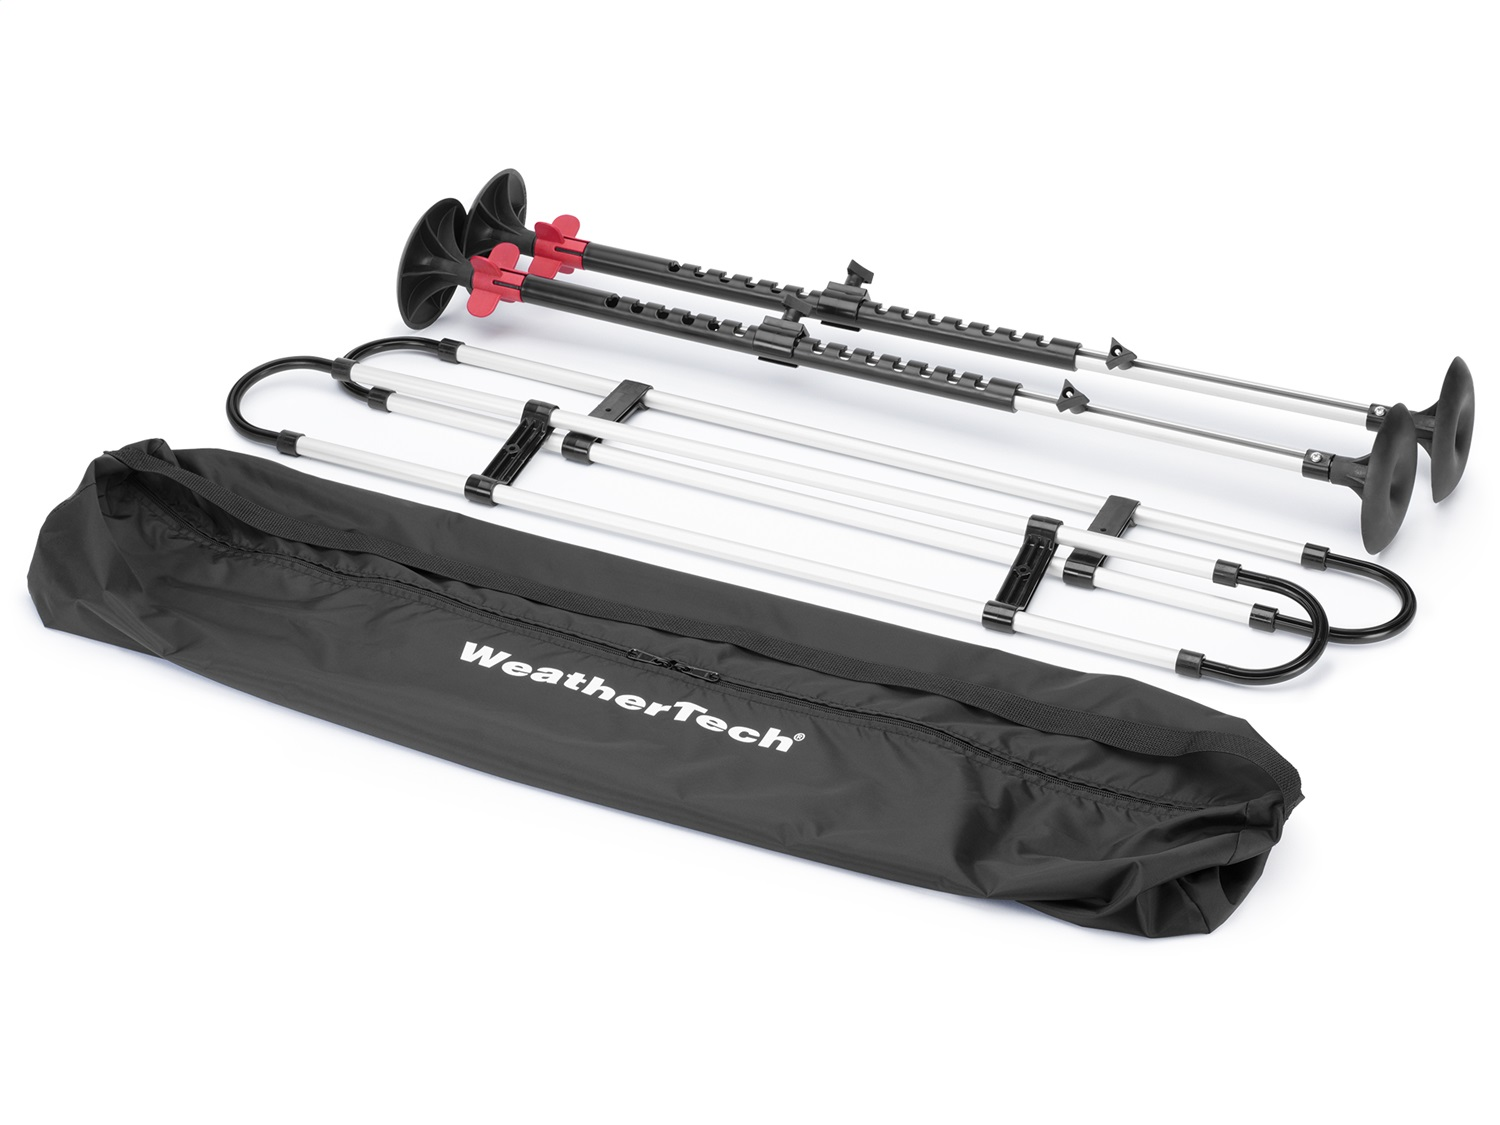 Weathertech 84PB16 Pet Barrier Storage Bag